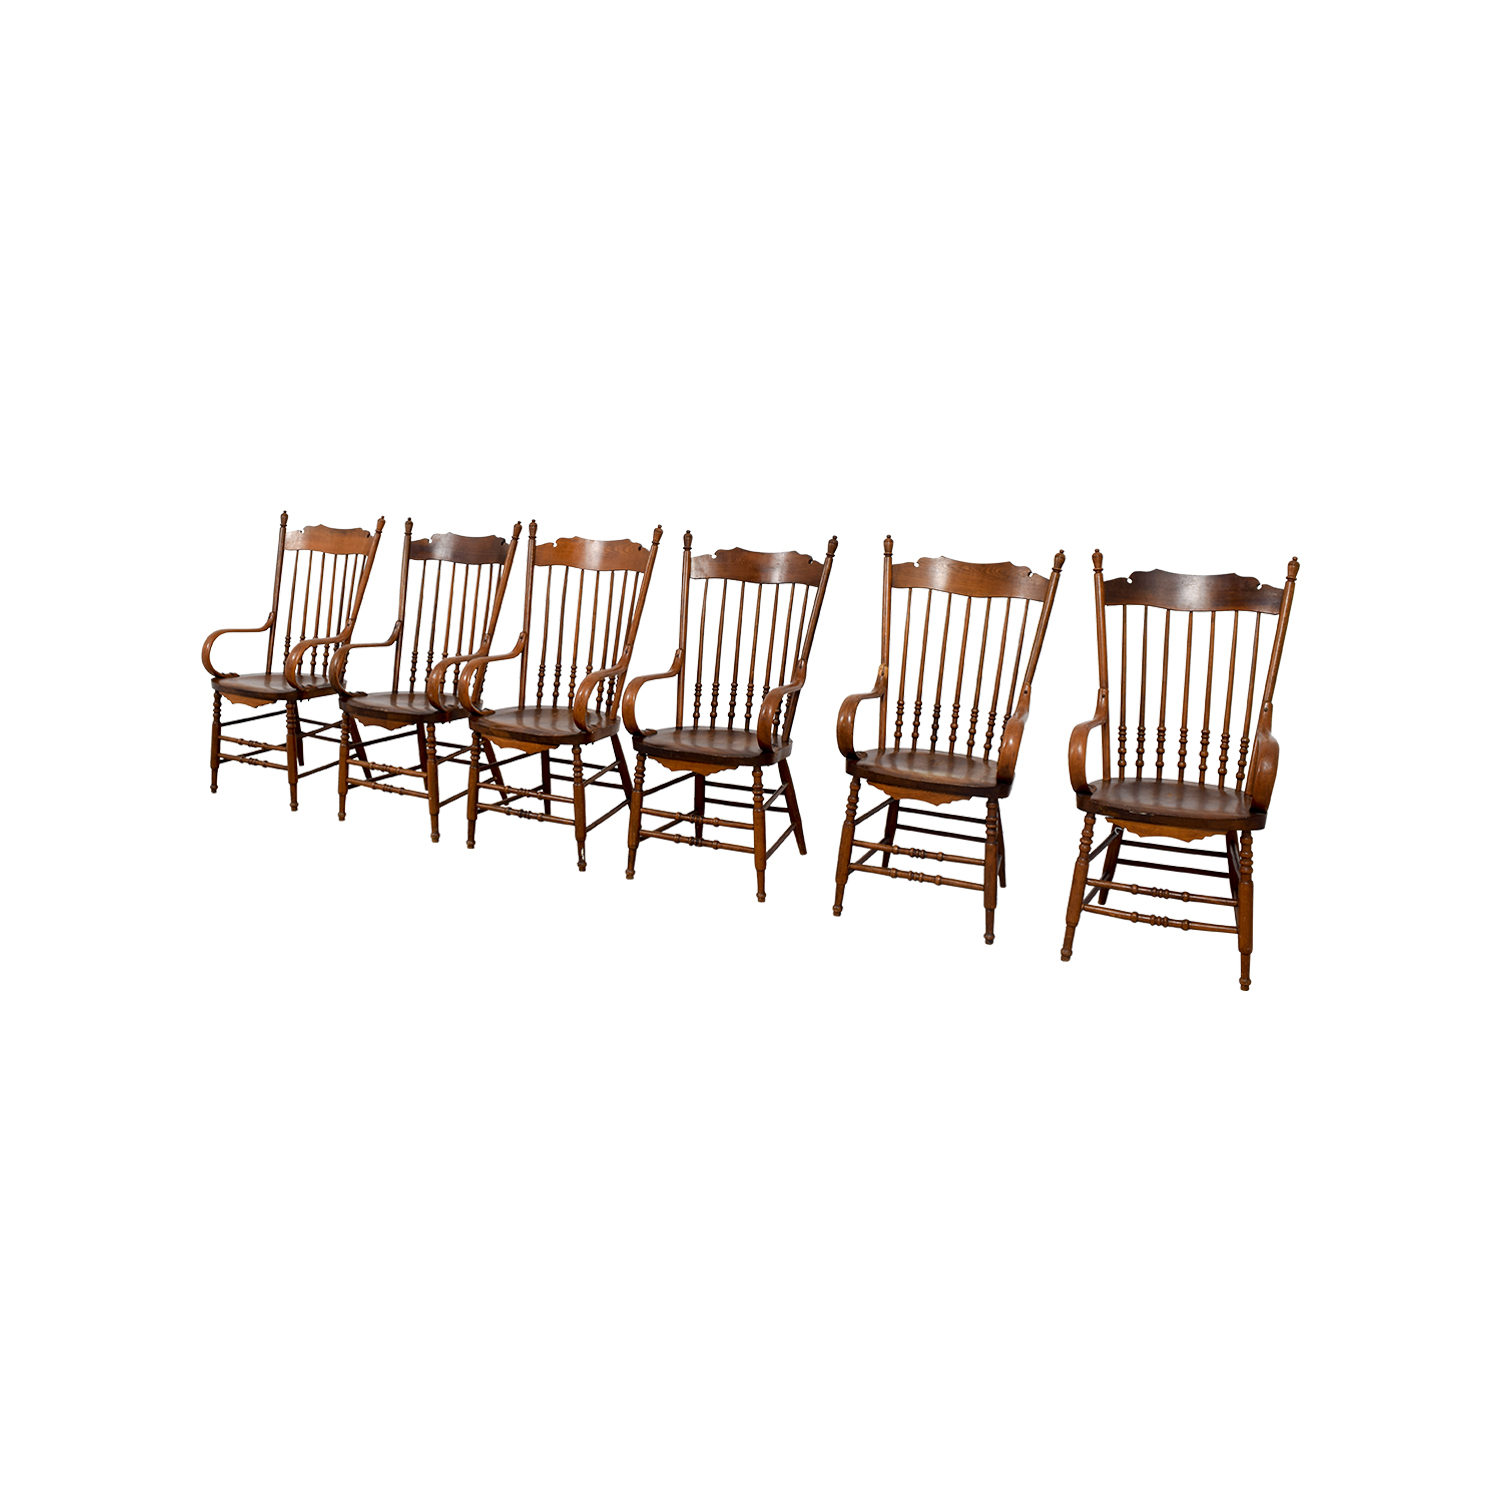 windsor chair with arms chairman en espanol 89 off antique chairs